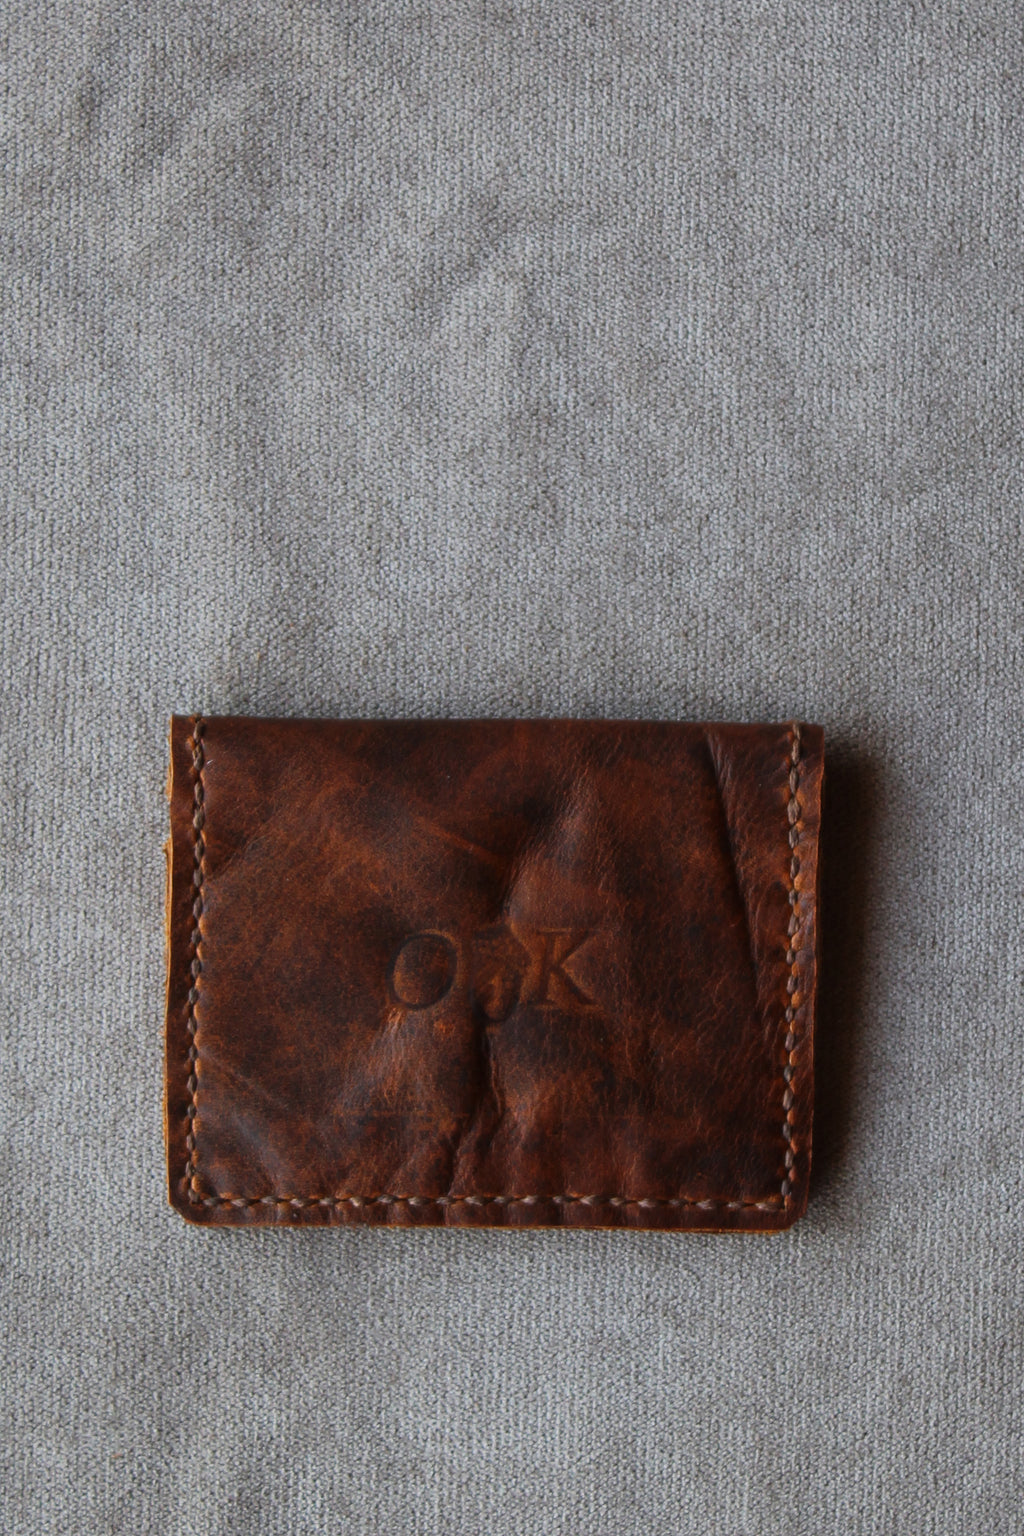 photo of the slim wallet